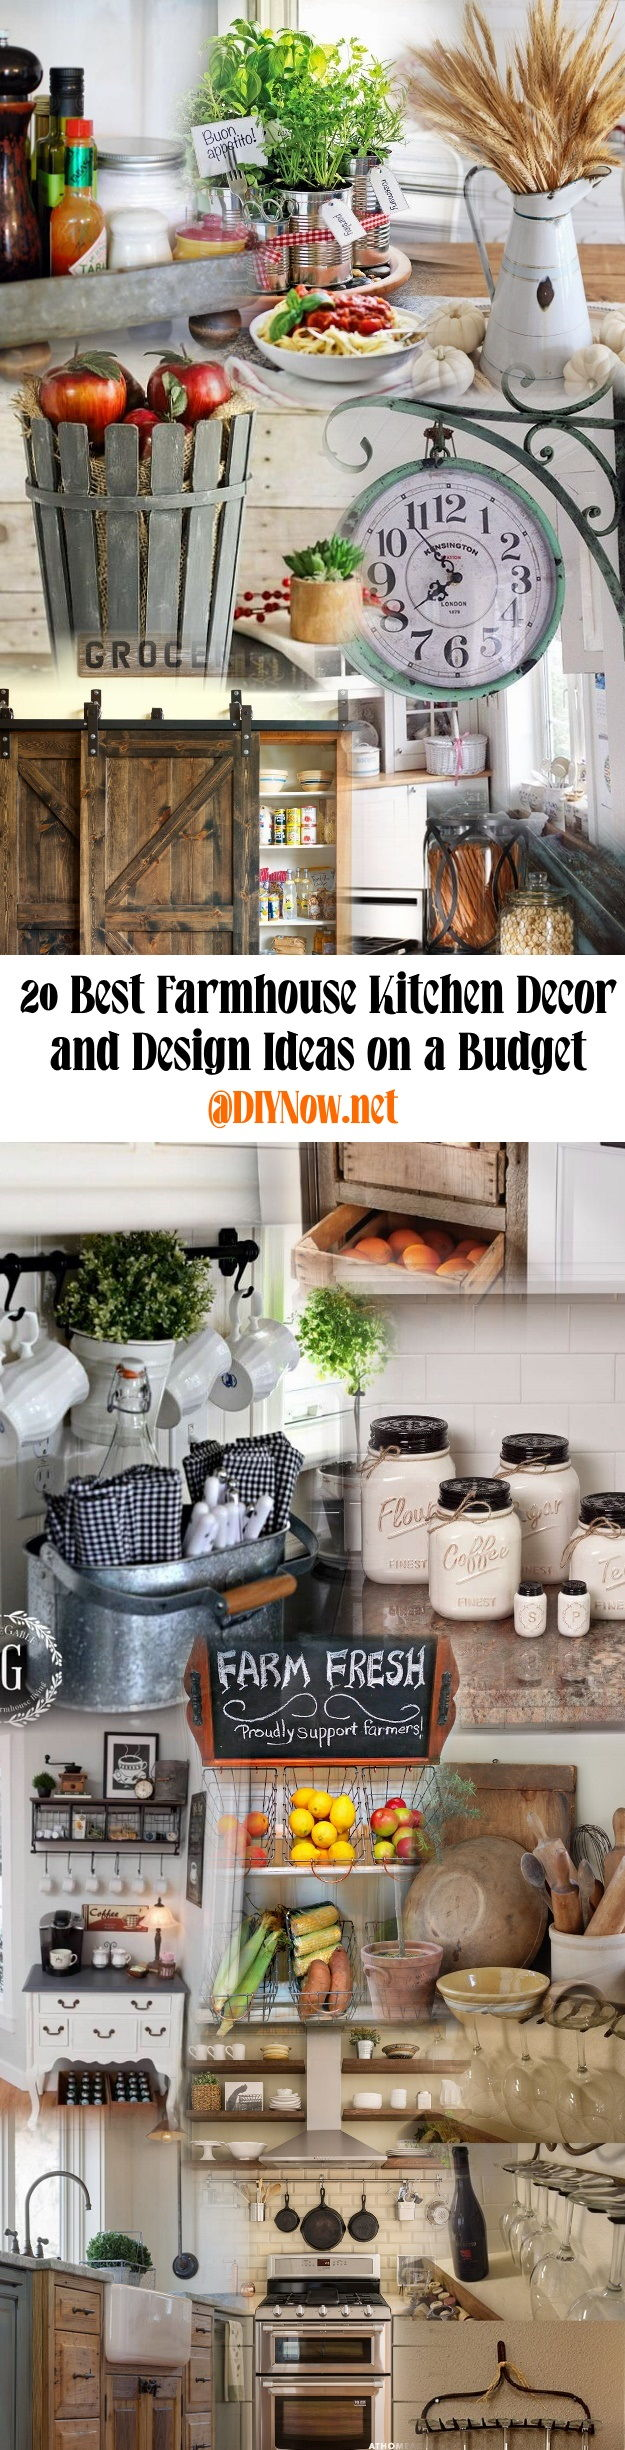 20 best farmhouse kitchen decor and design ideas on a 99 farmhouse kitchen ideas on a budget 2017 41